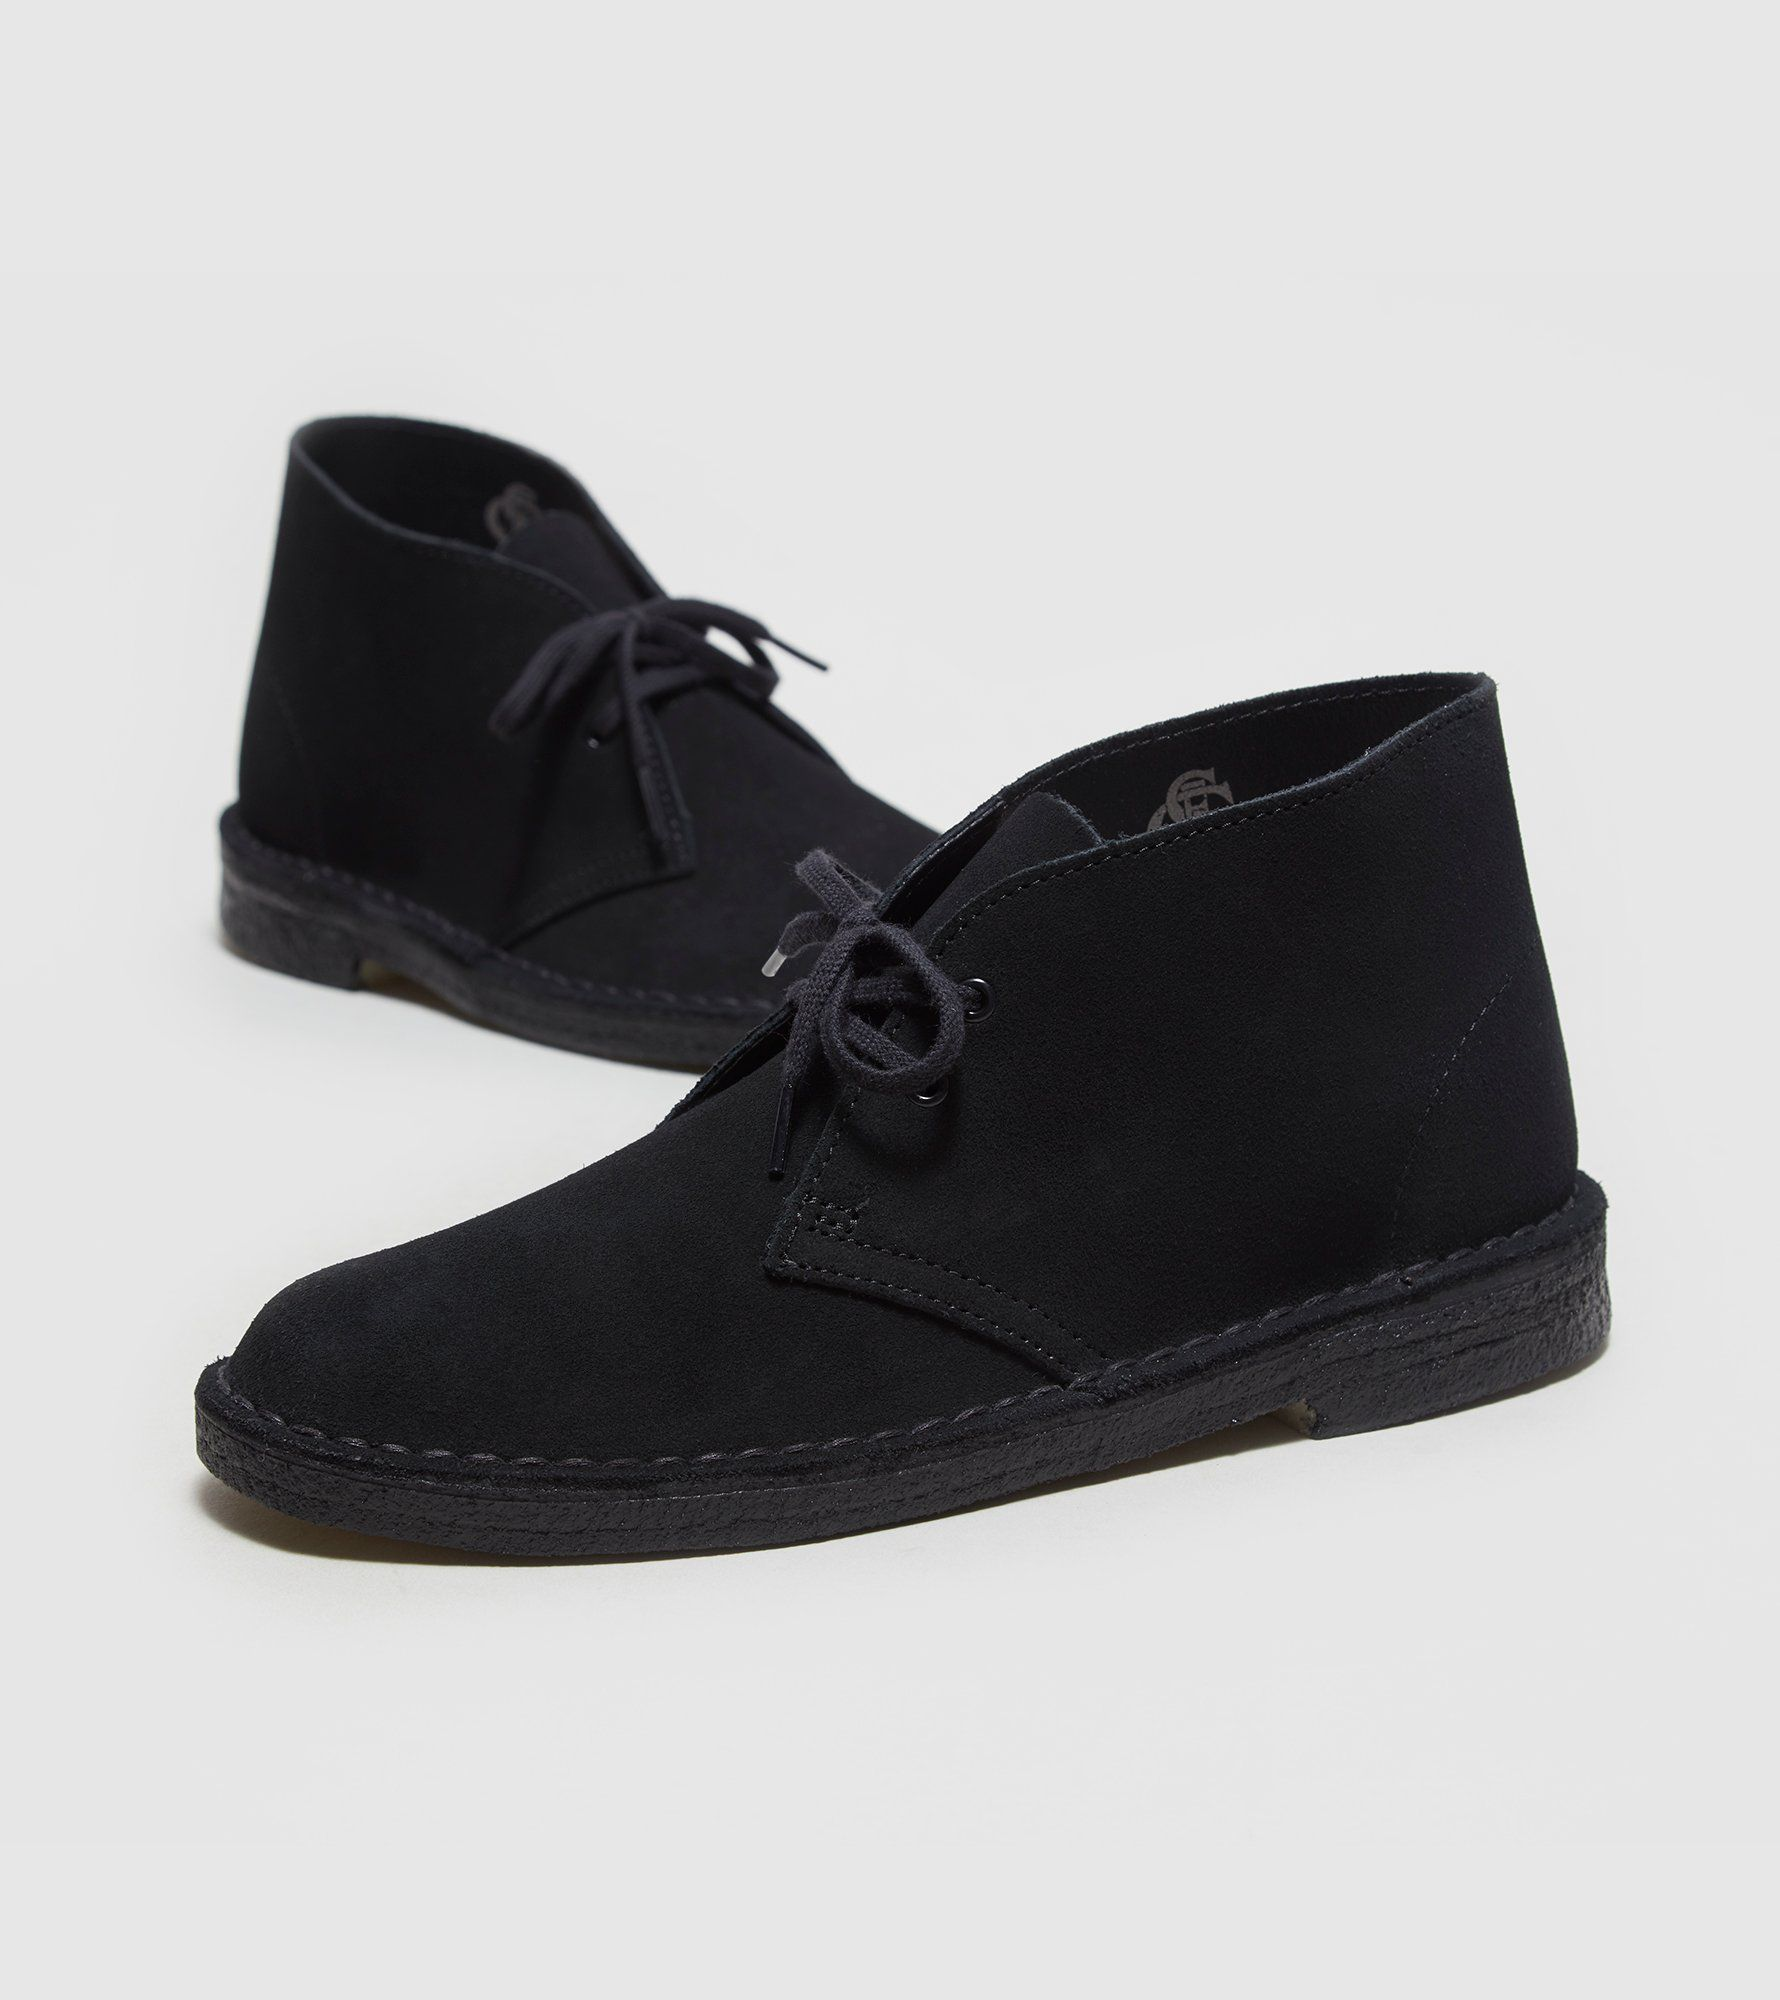 Amazing  Of These Although Im Trying To Steer Away From Black